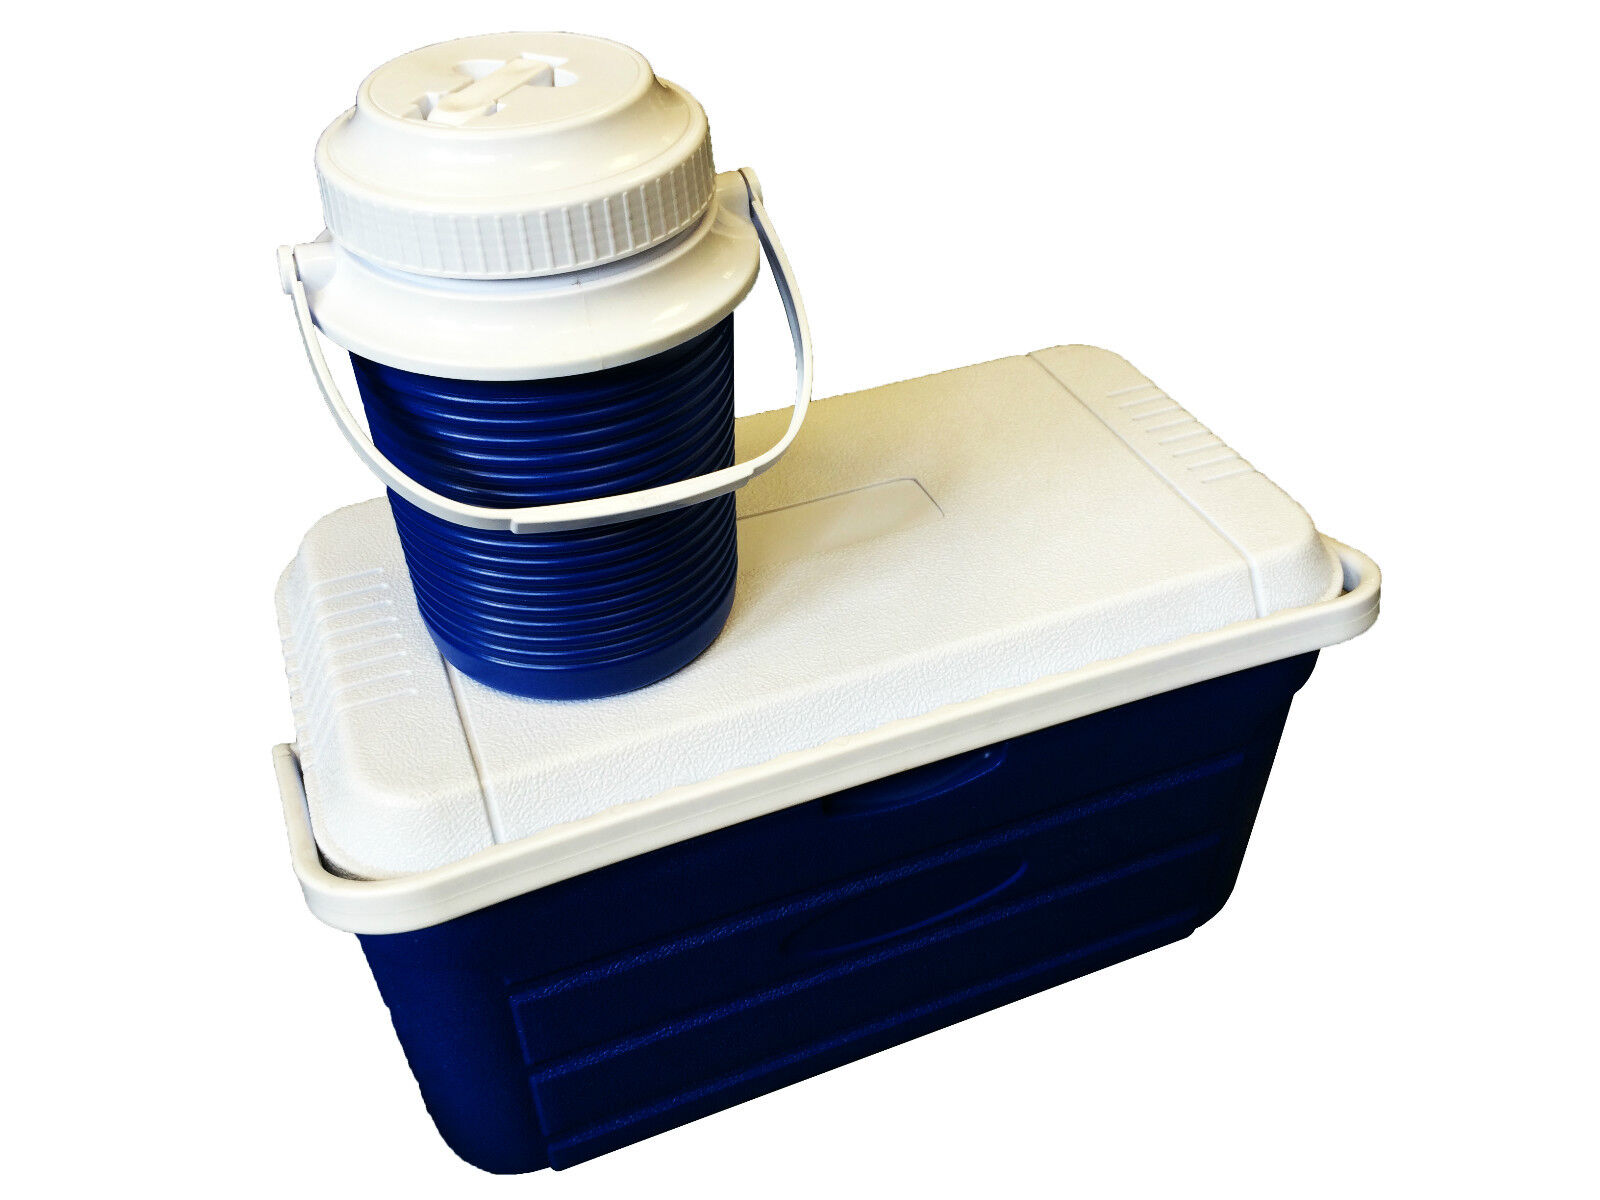 20 LITRE COOL BOX - SEAT and free 2.3 LITRE DRINKS JUG camping fishing picnics